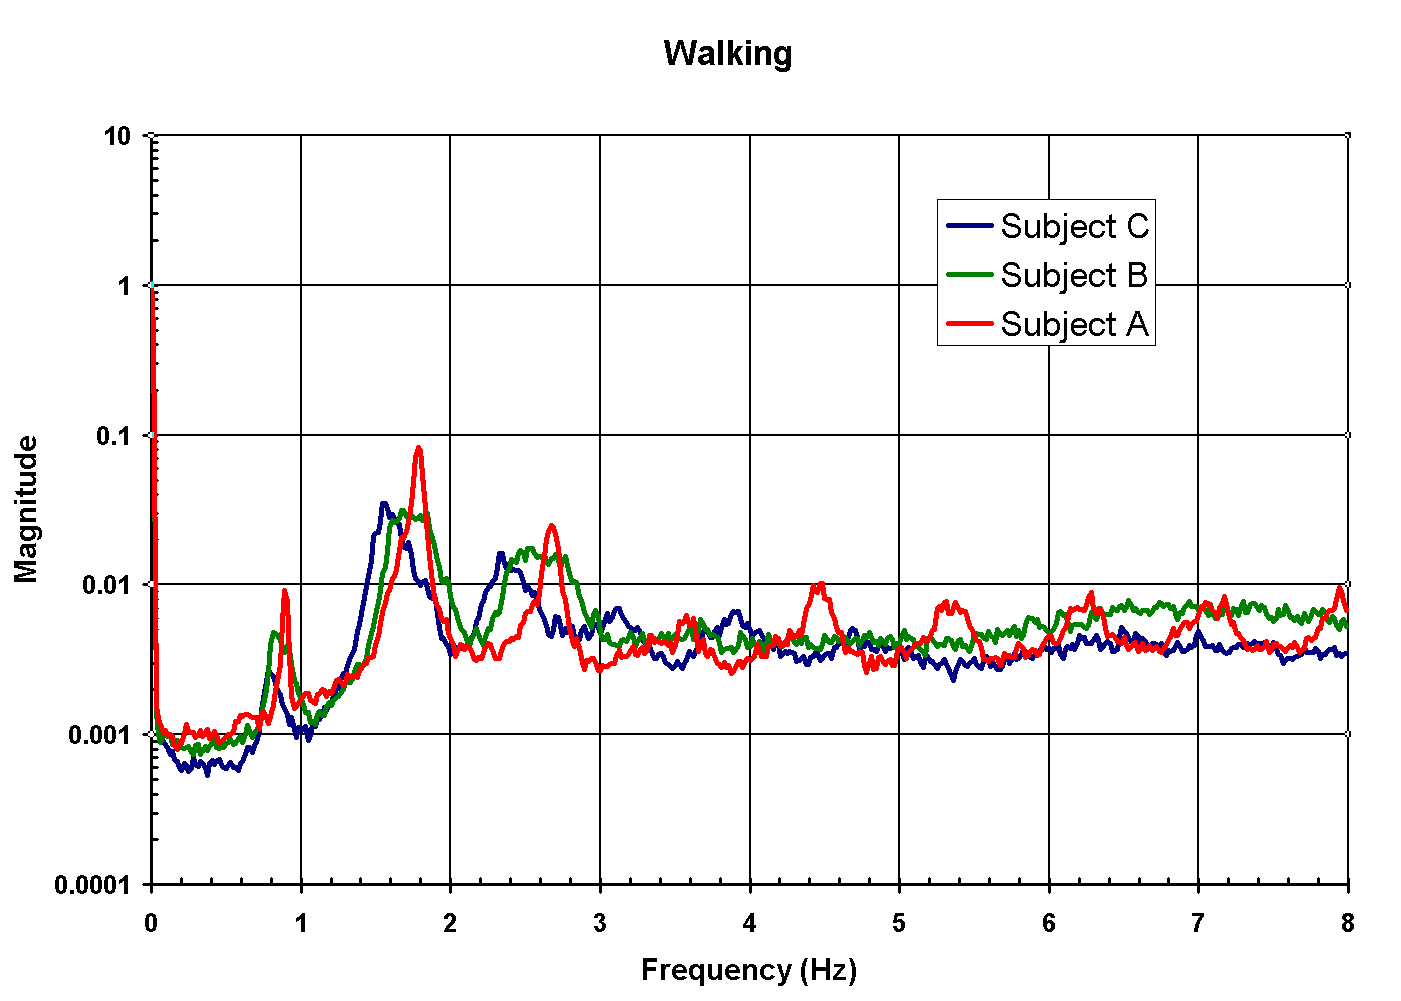 Walking Spectral Characteristics